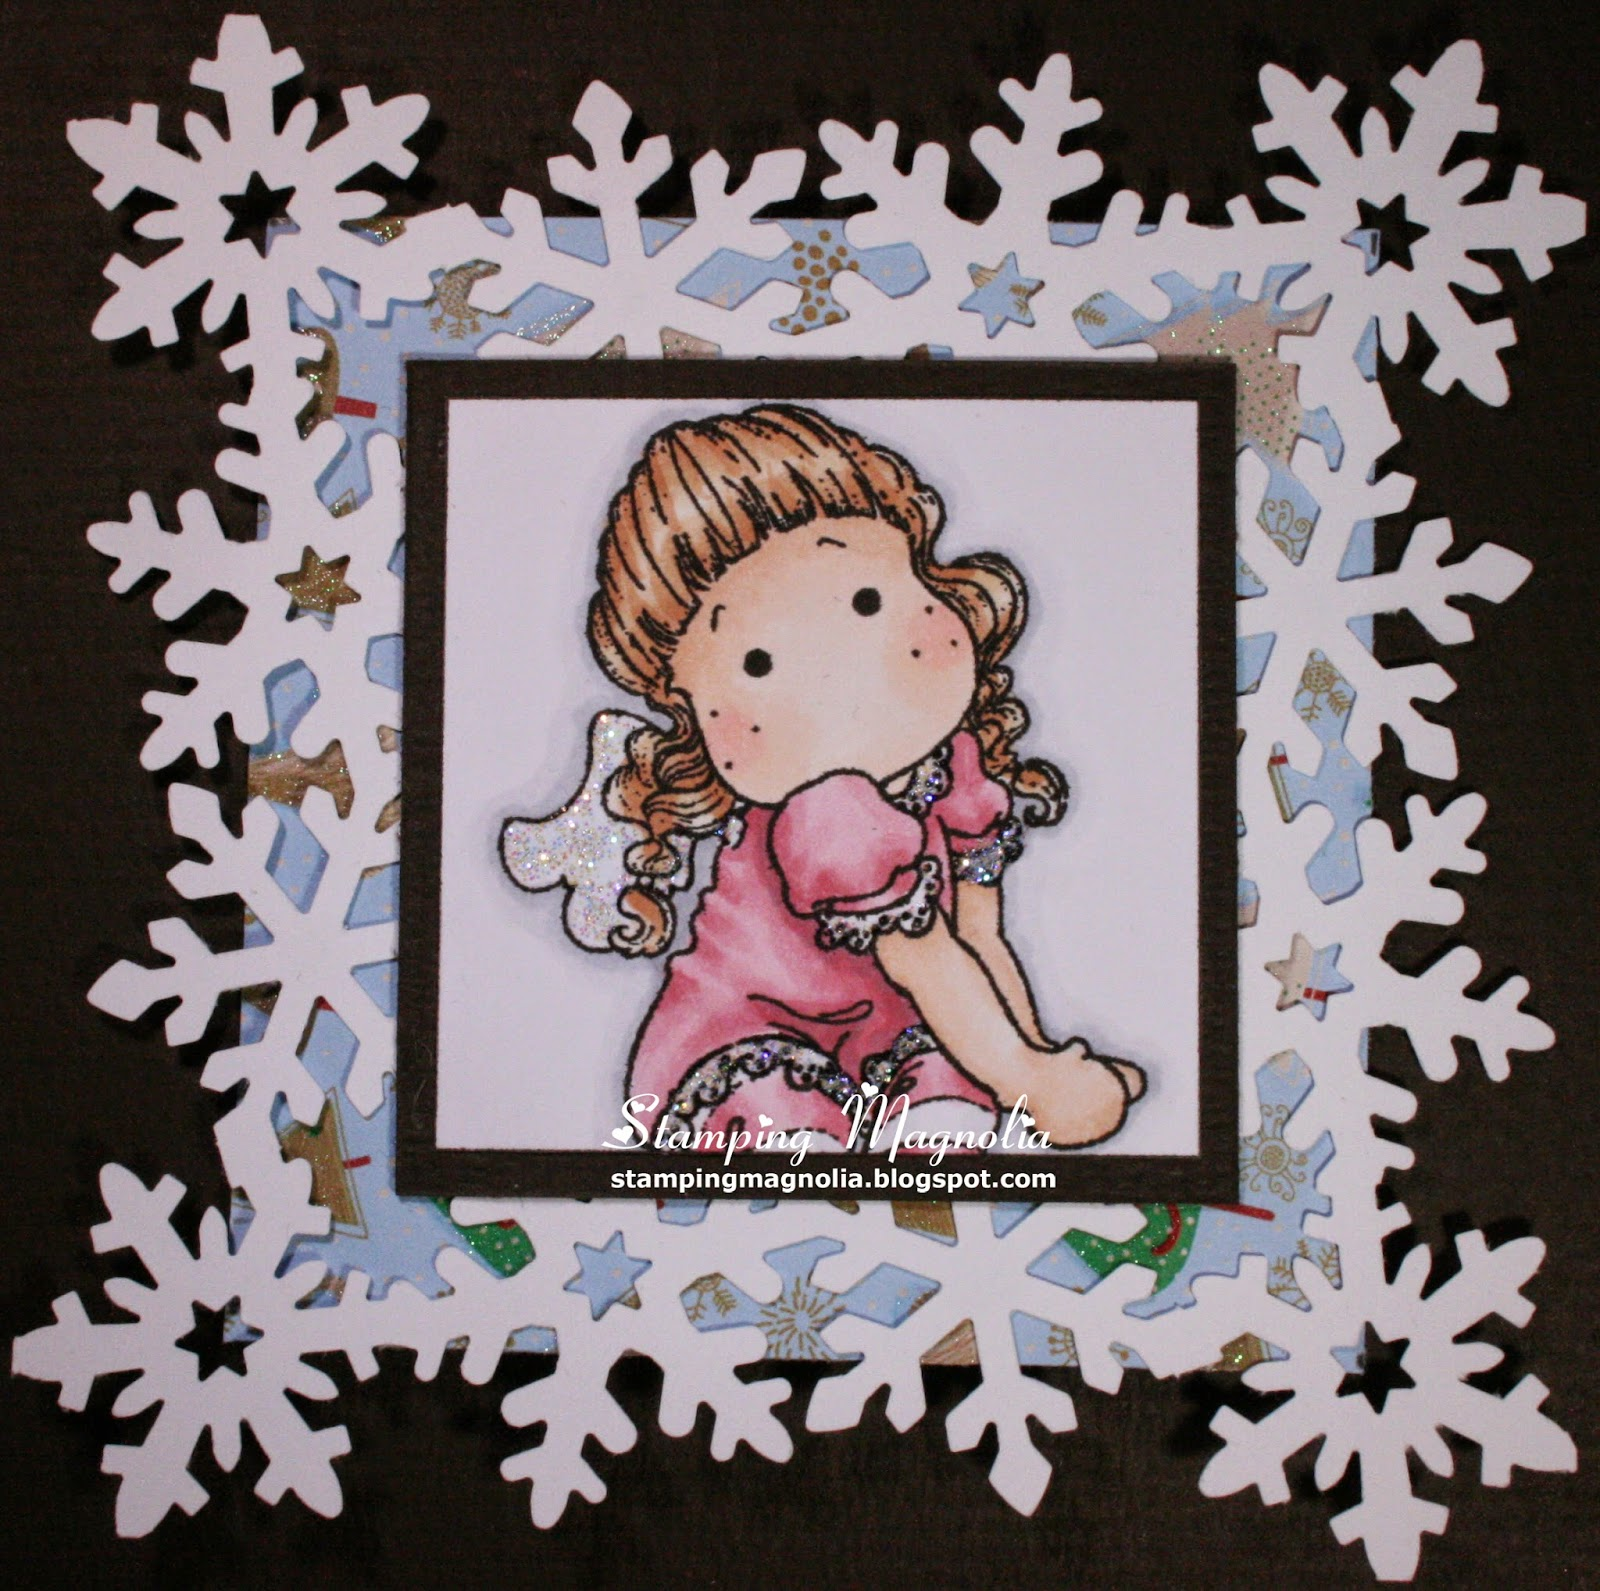 Coloring Magnolia Stamp Merry Little Christmas Collection - Sitting Angel Tilda